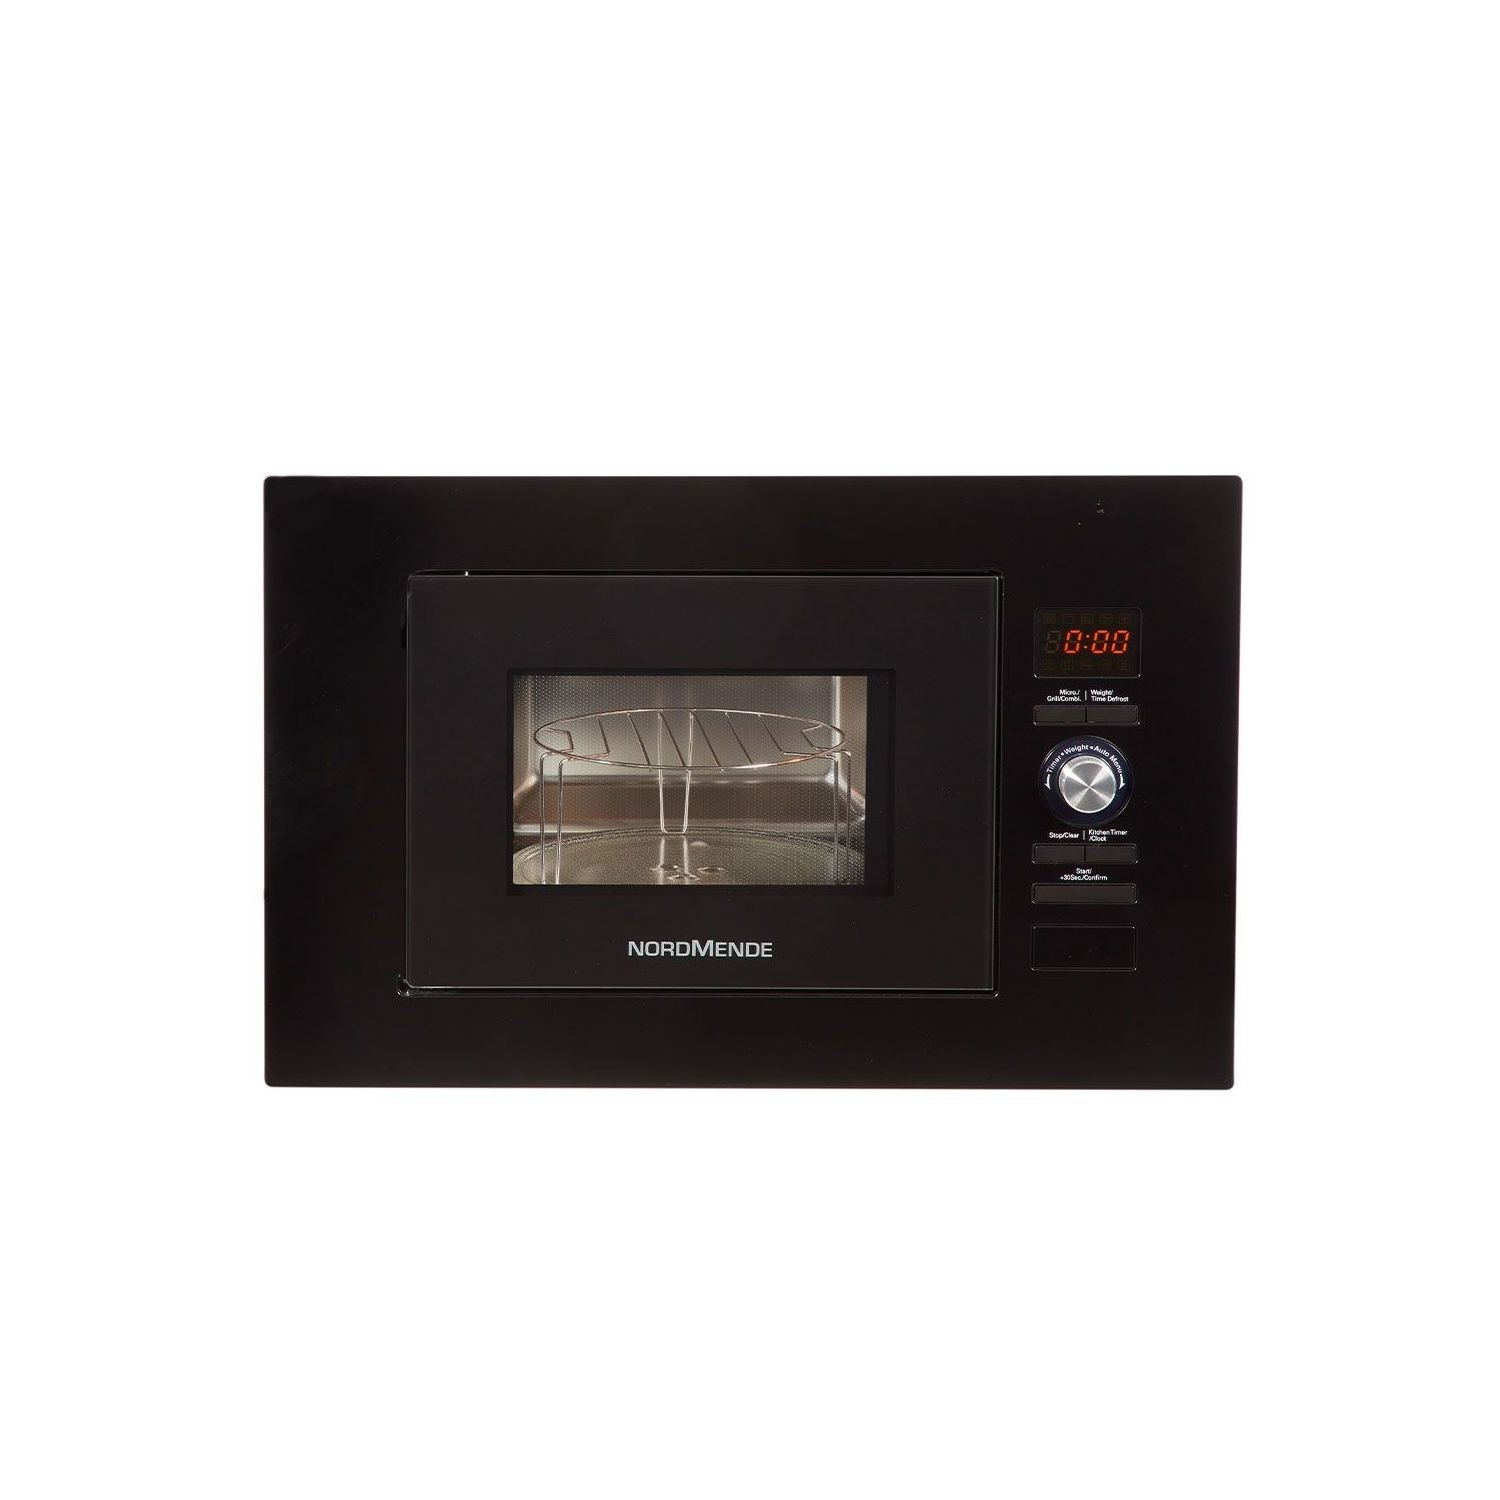 nordmende nm824bbl 800w 20l built in microwave oven gloss black